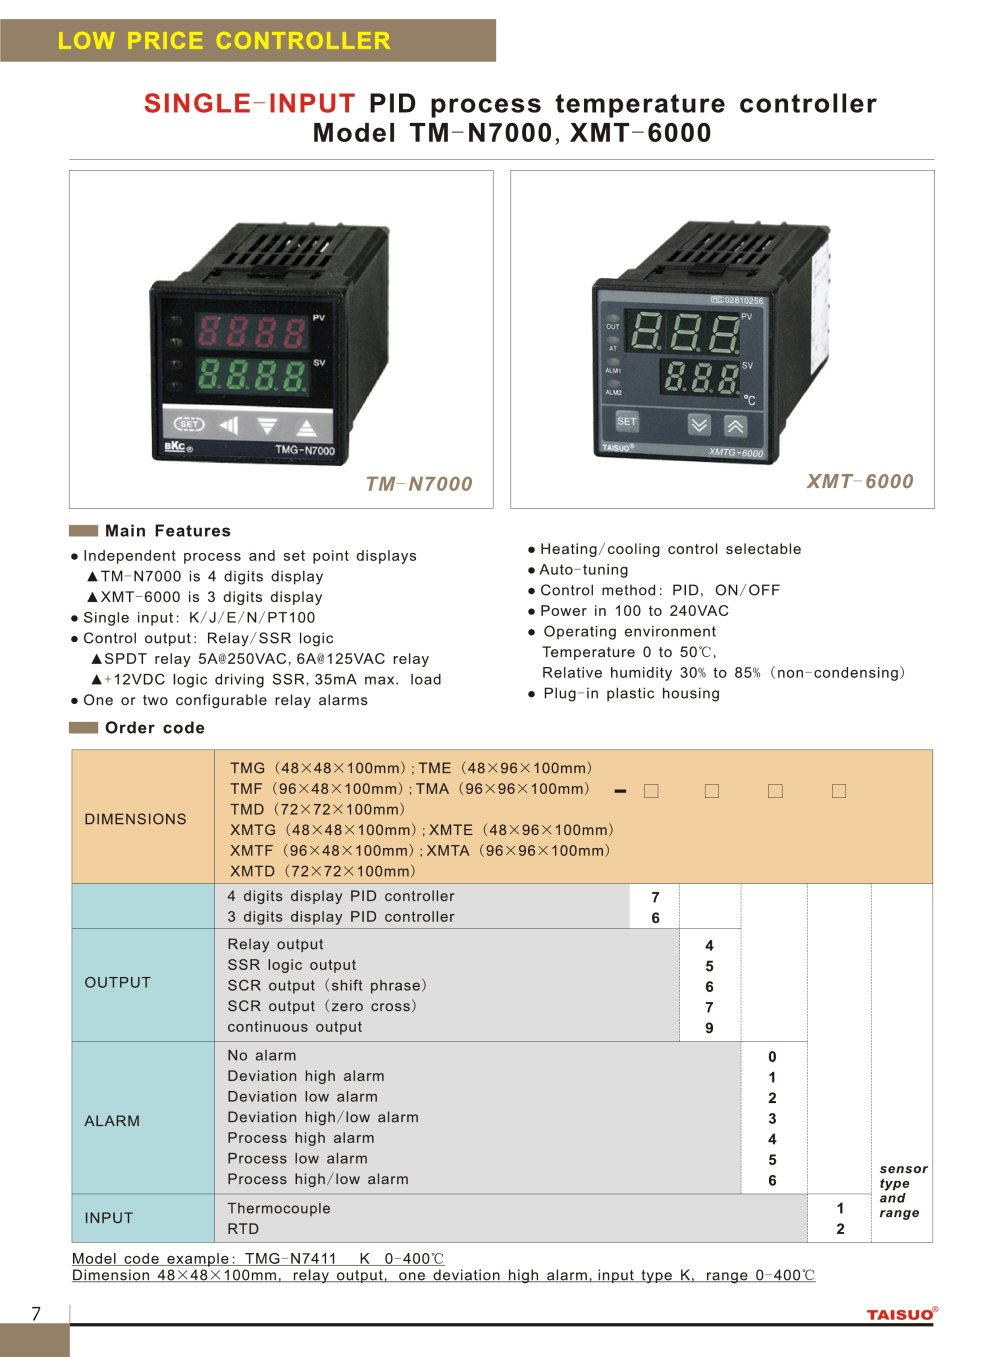 Taisuo Single Input Pid Process Temperature Controller Model Tm Complete Package Thermocouple Probe Ssr N7000xmt 6000 For Industry 1 Pages